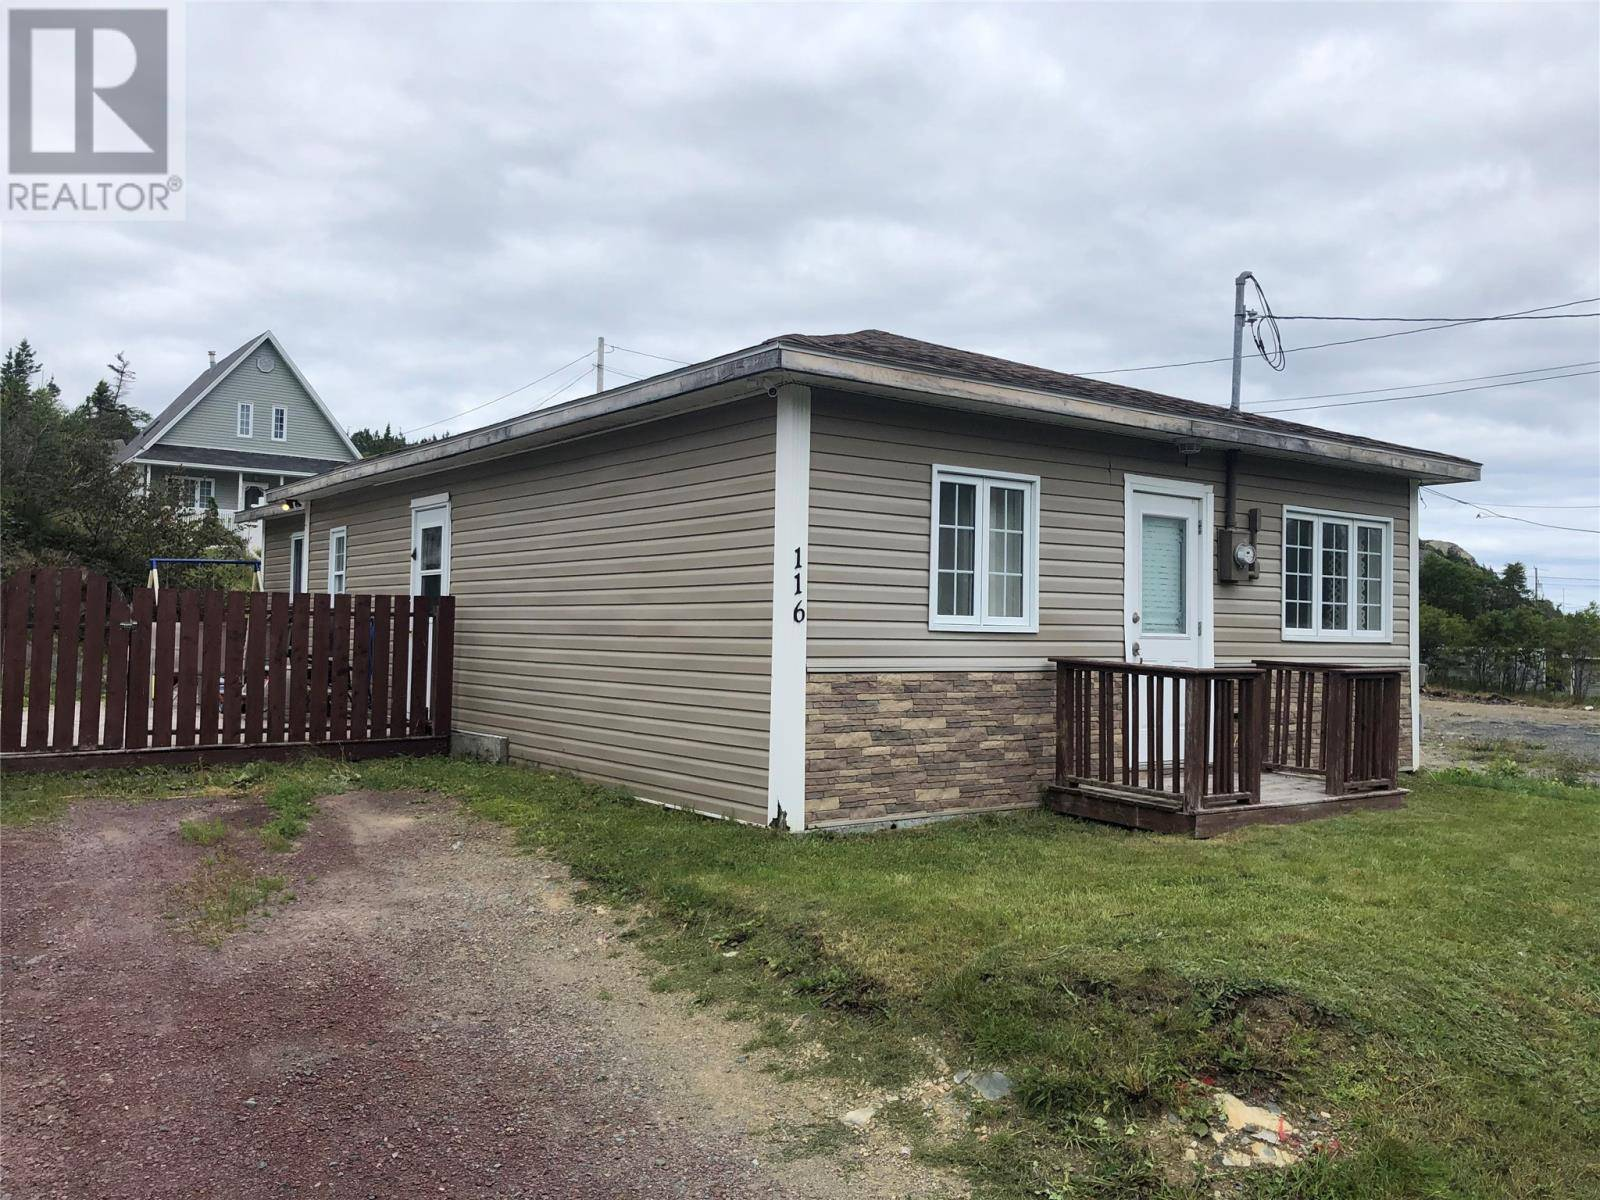 House for sale at 114 New Harbour Rd Spaniard's Bay Newfoundland - MLS: 1202778